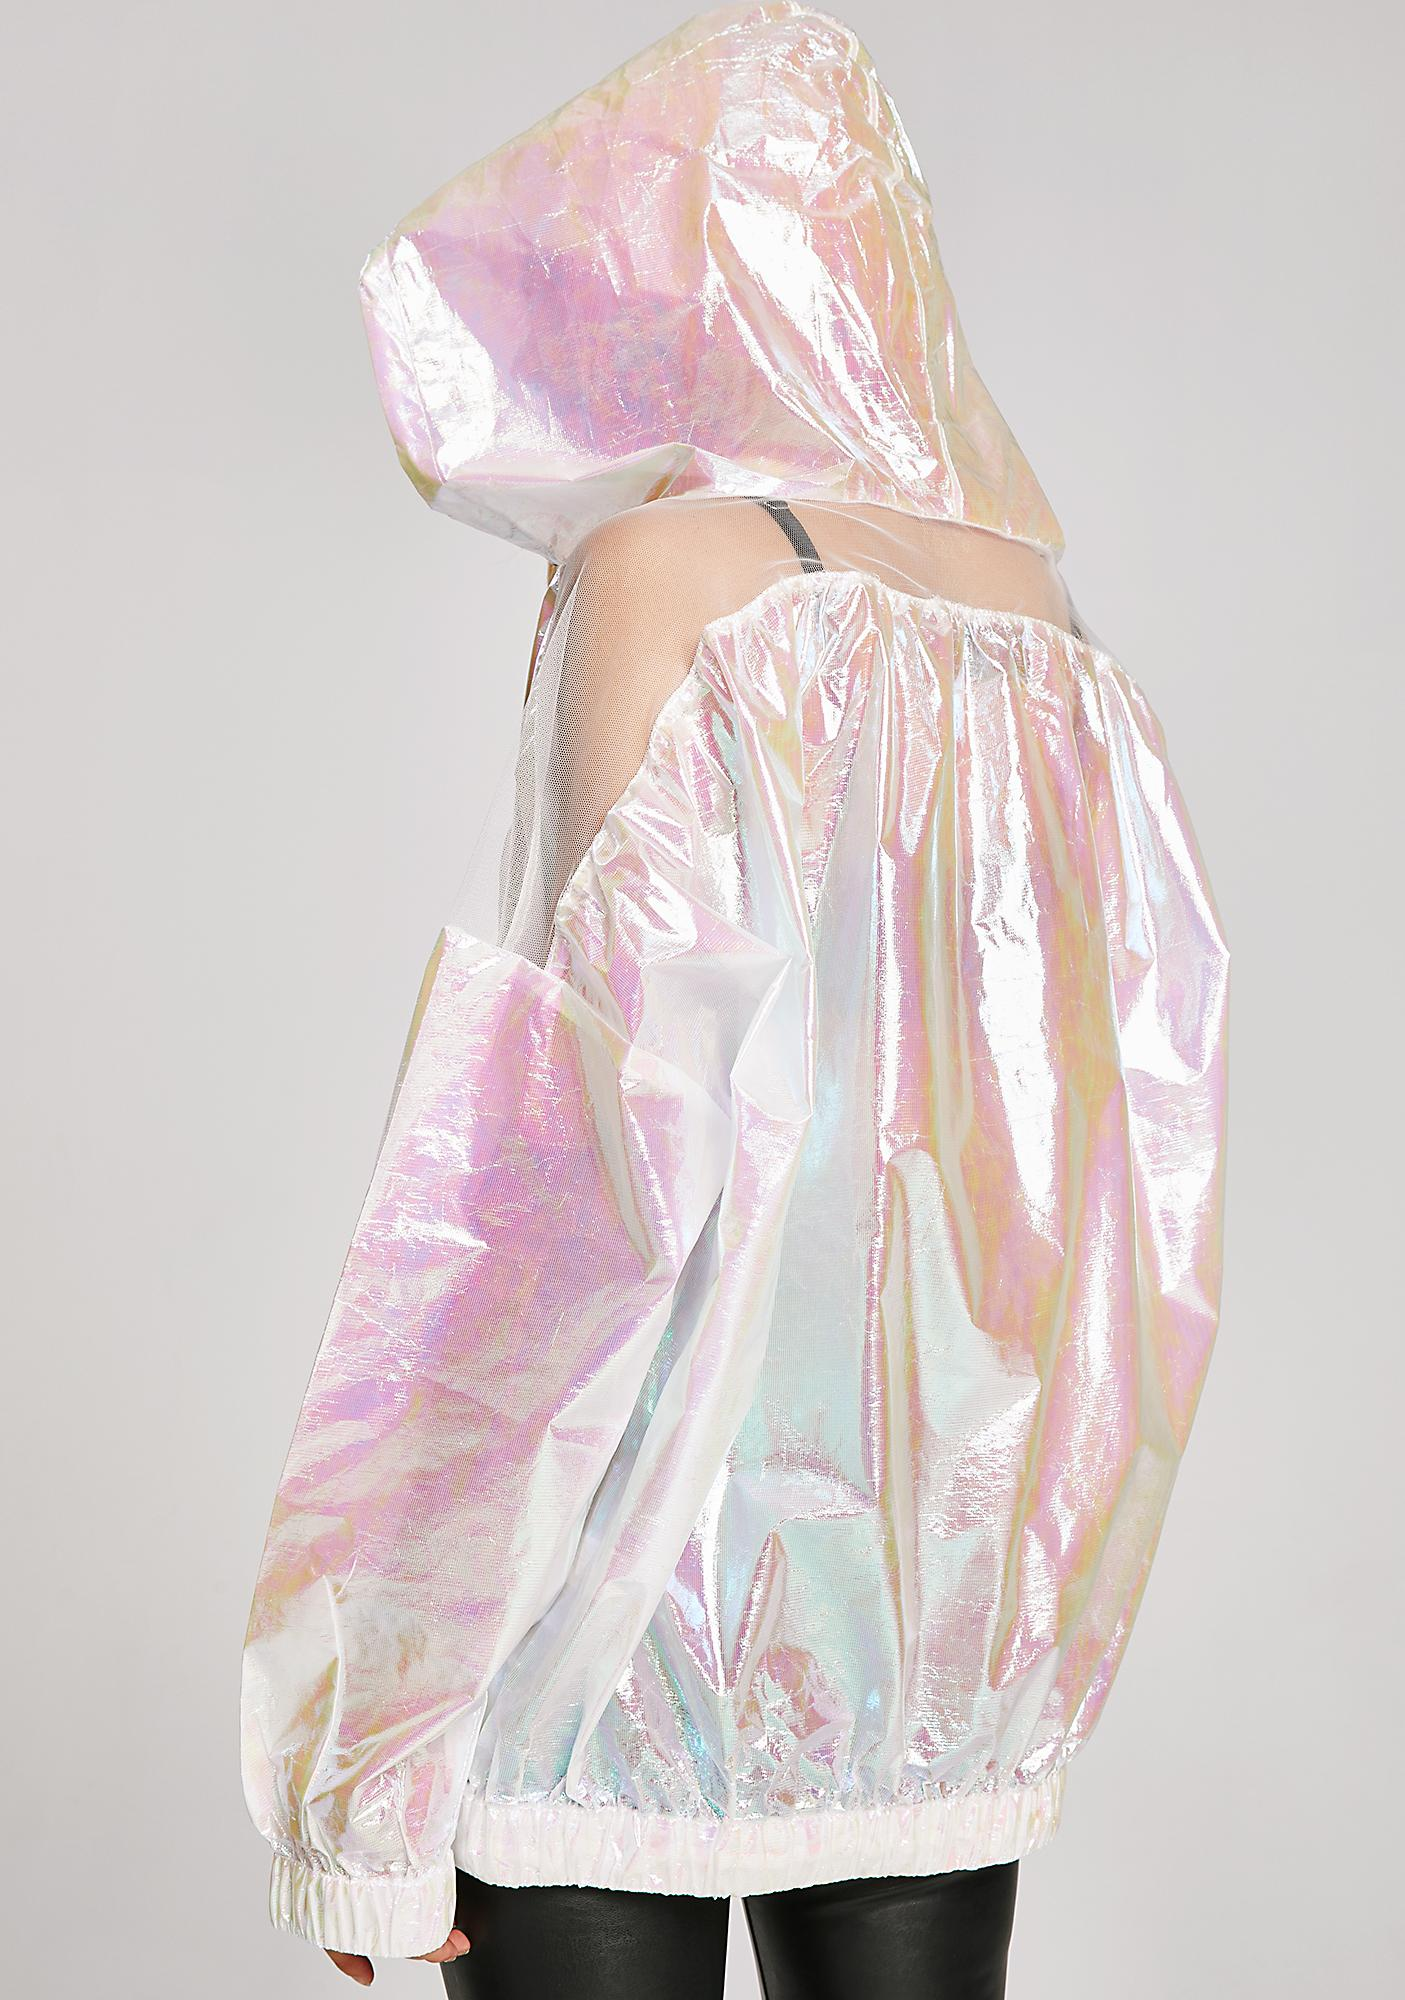 Spacin' Out Holographic Hoodie